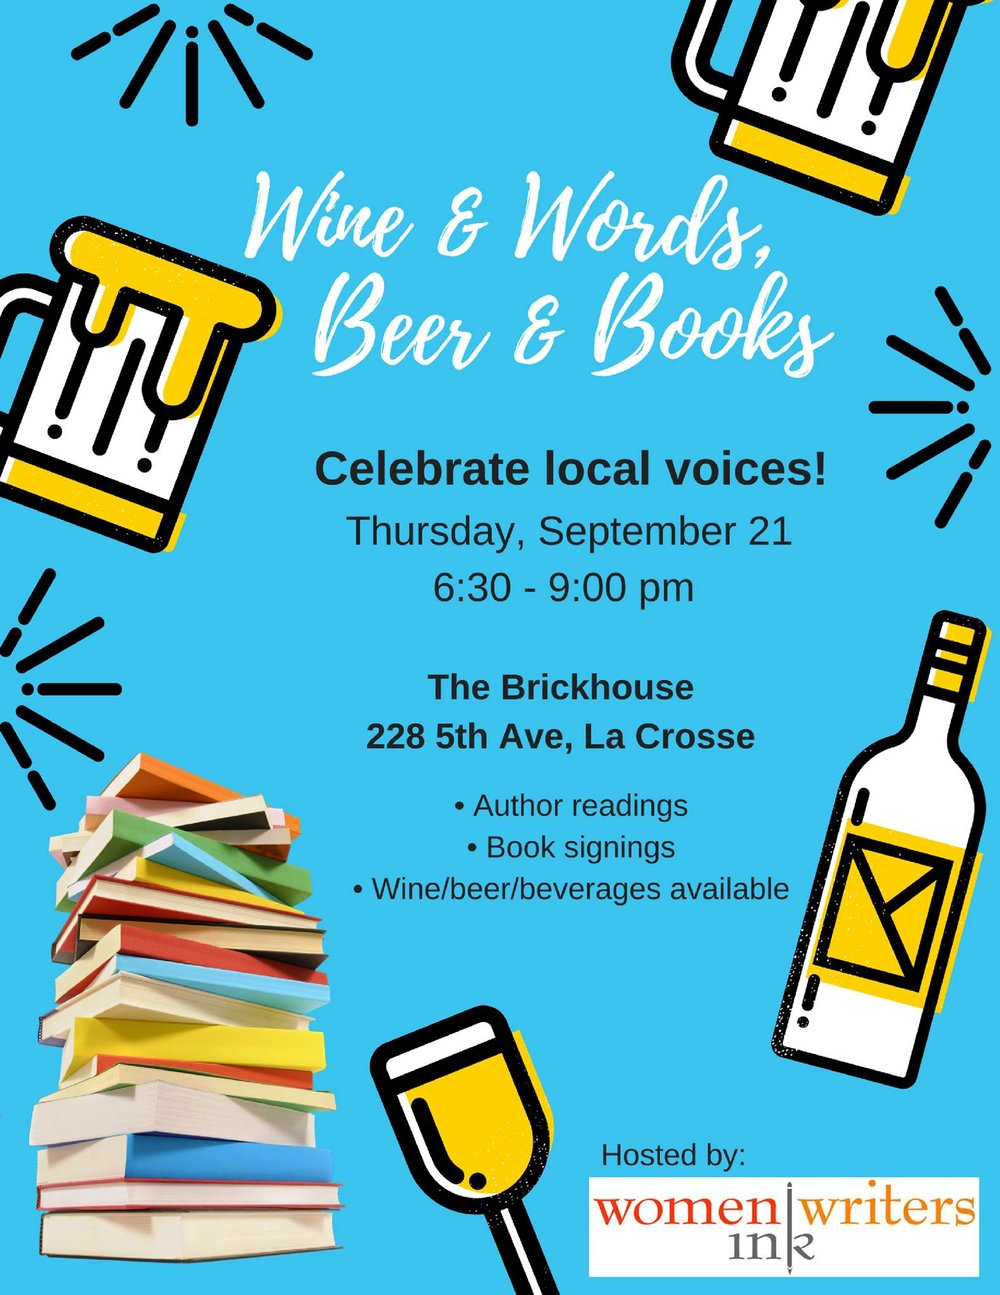 wine and words books and beer 2017.jpg